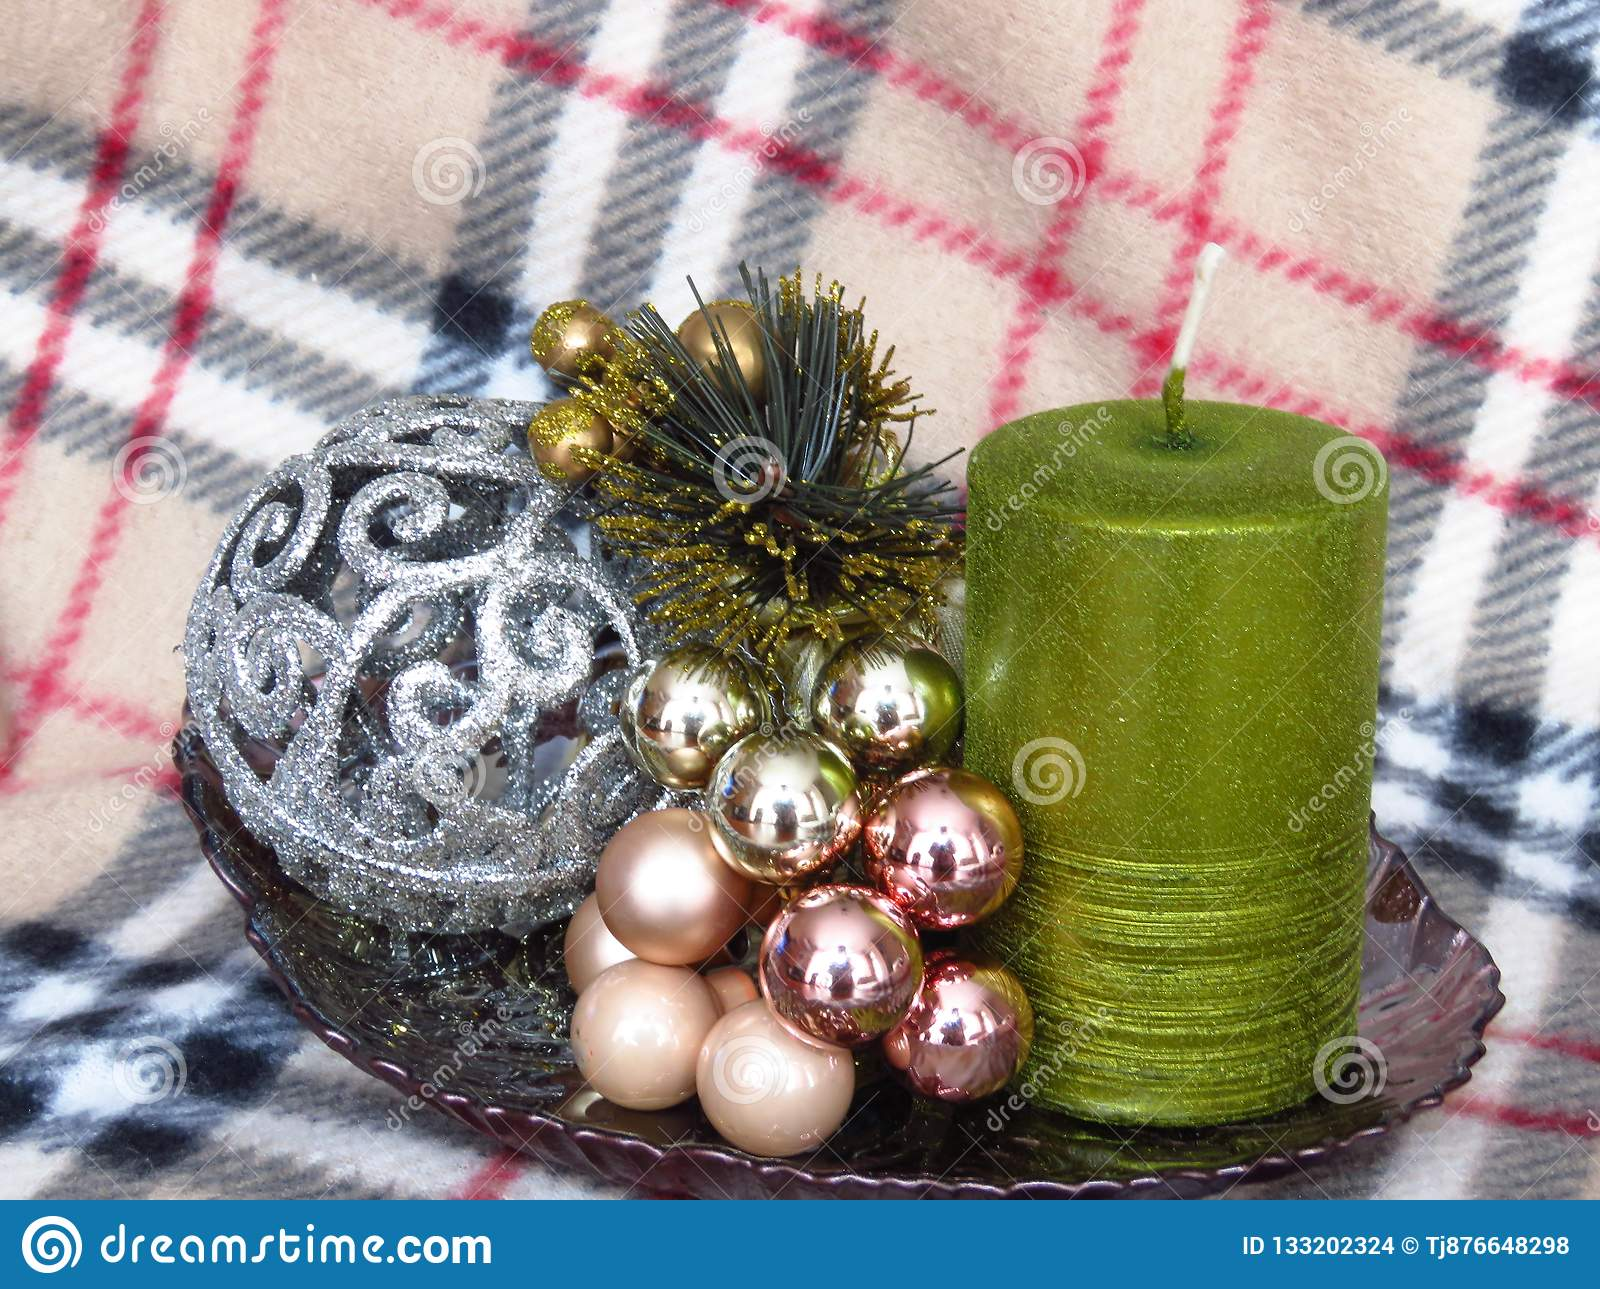 Christmas table decoration on warm winter blanket background. New year decoration.